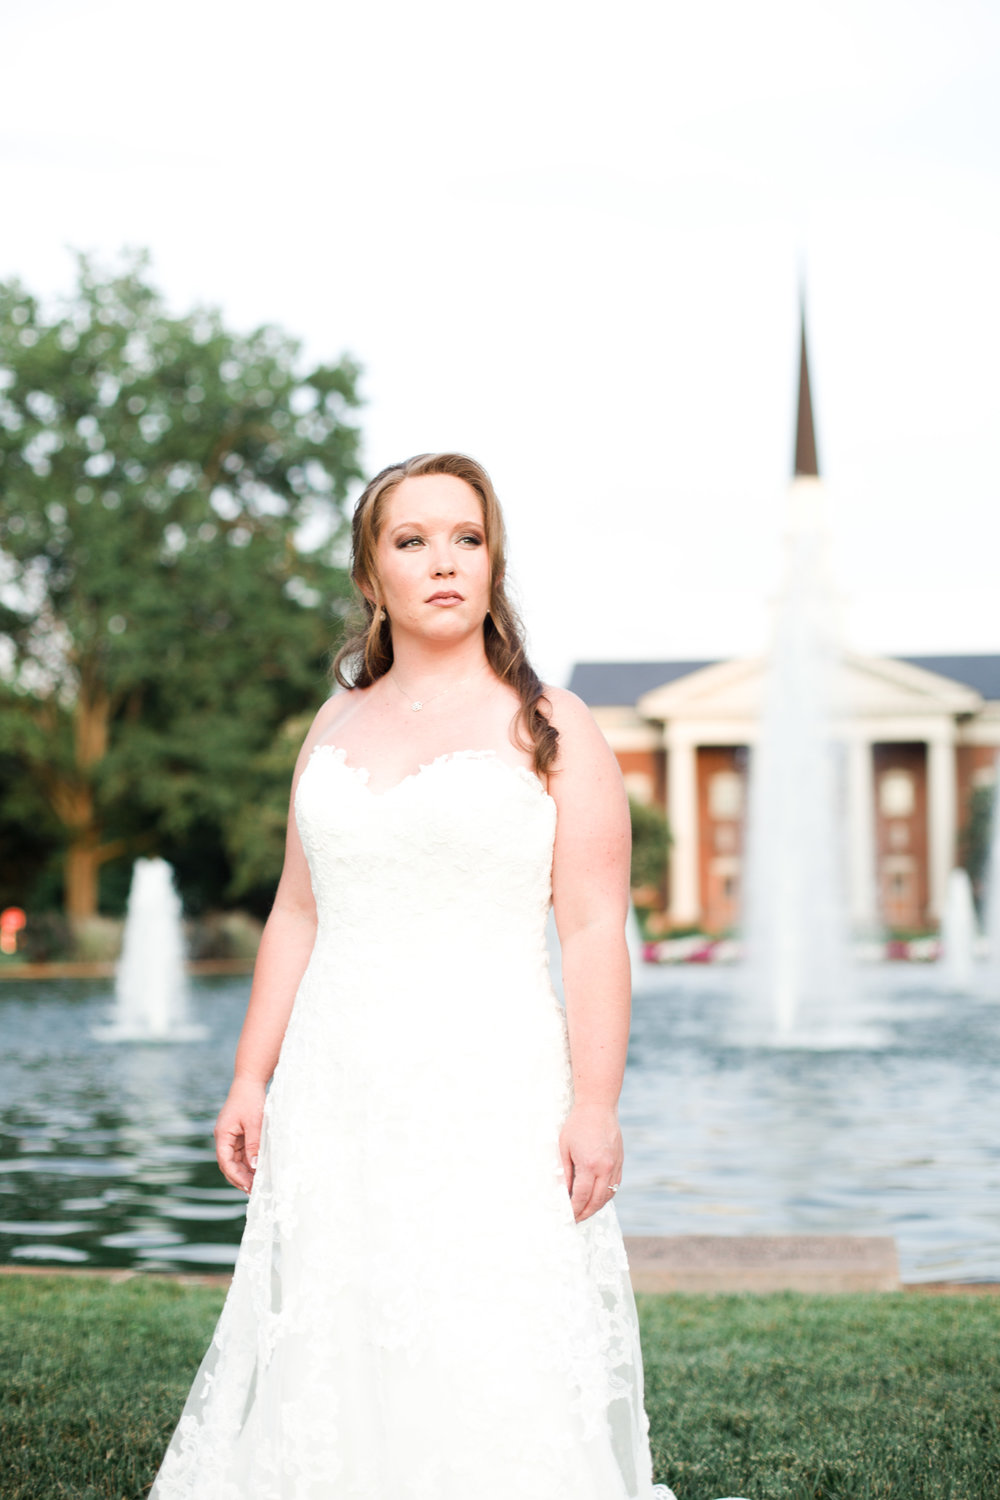 gabbie_bridal_poured_out_photography-81.jpg